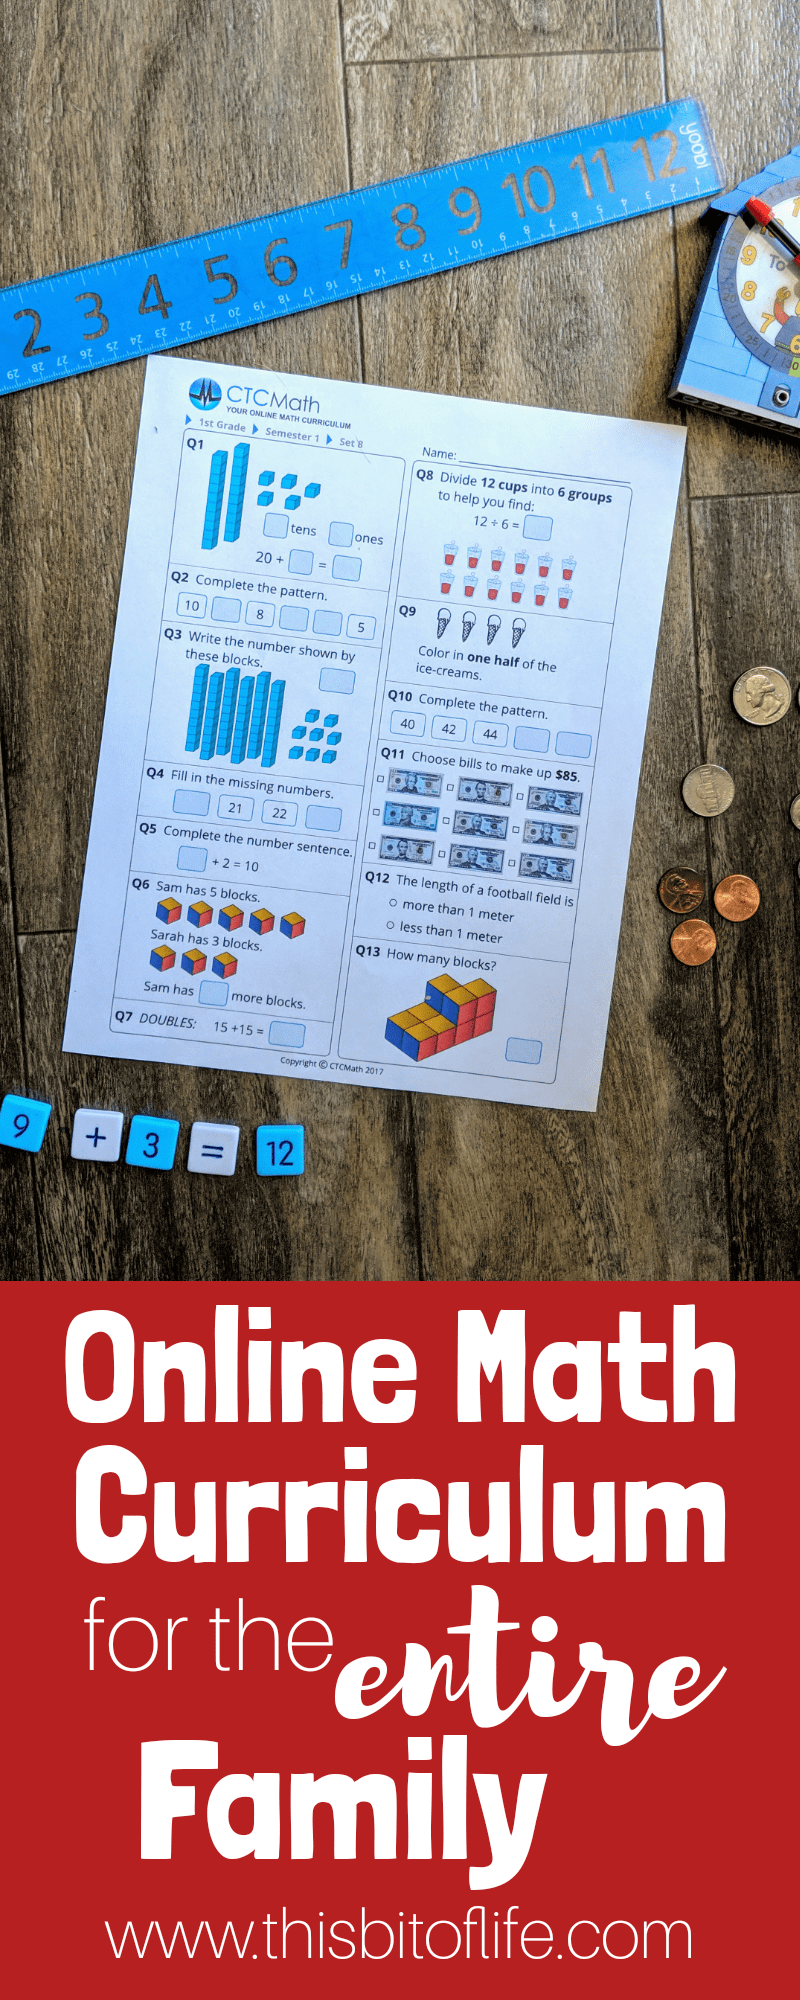 Online Math Curriculum for the Entire Family. CTCMath is affordable math curriculum that will make math stress free #mathcurriculum #ctcmath #homeschoolmath #onlinemath